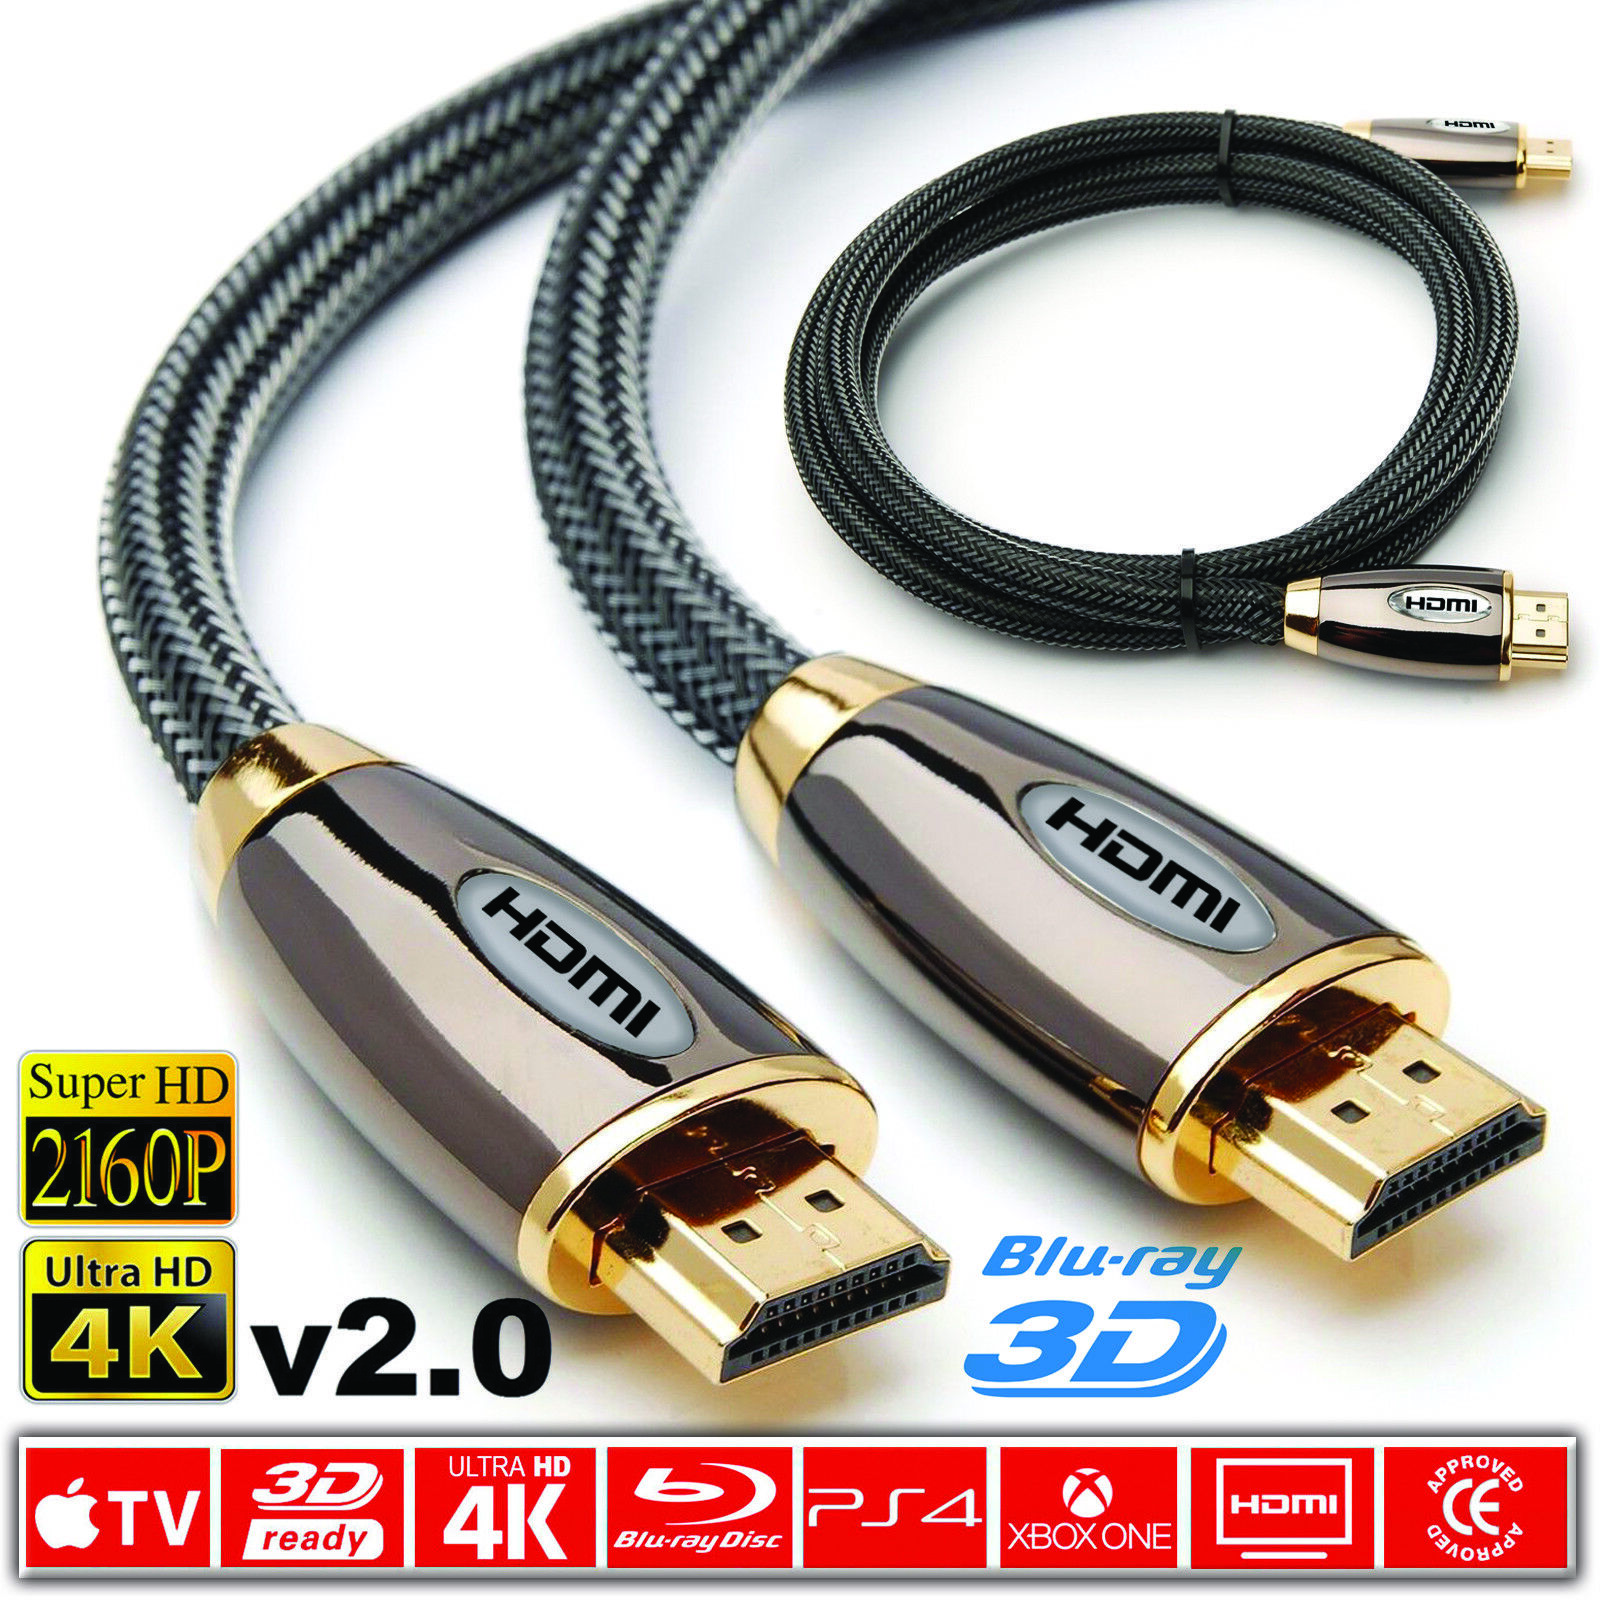 Premium HDMI Cable V2.0 2160P HDTV Video Lead 3D Full HD 4K 1M 2M 3M 10M 15M Lot